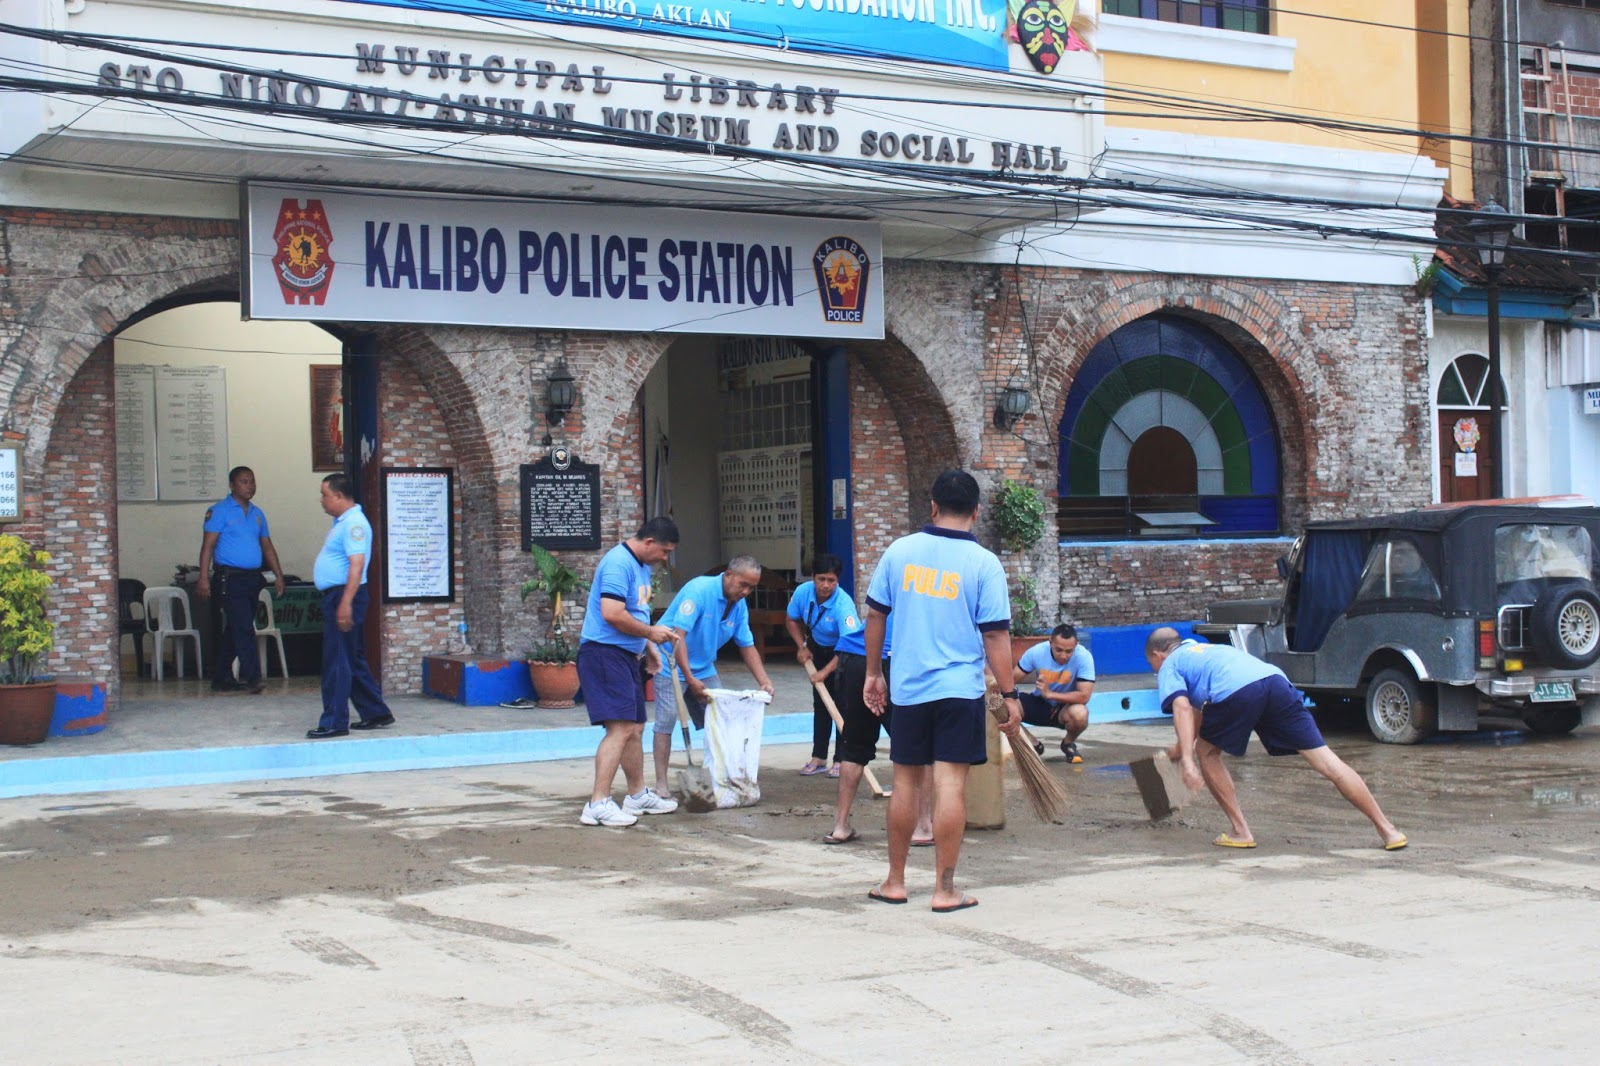 AKLAN FORUM journal: Kalibo PNP is region's most citizen ...